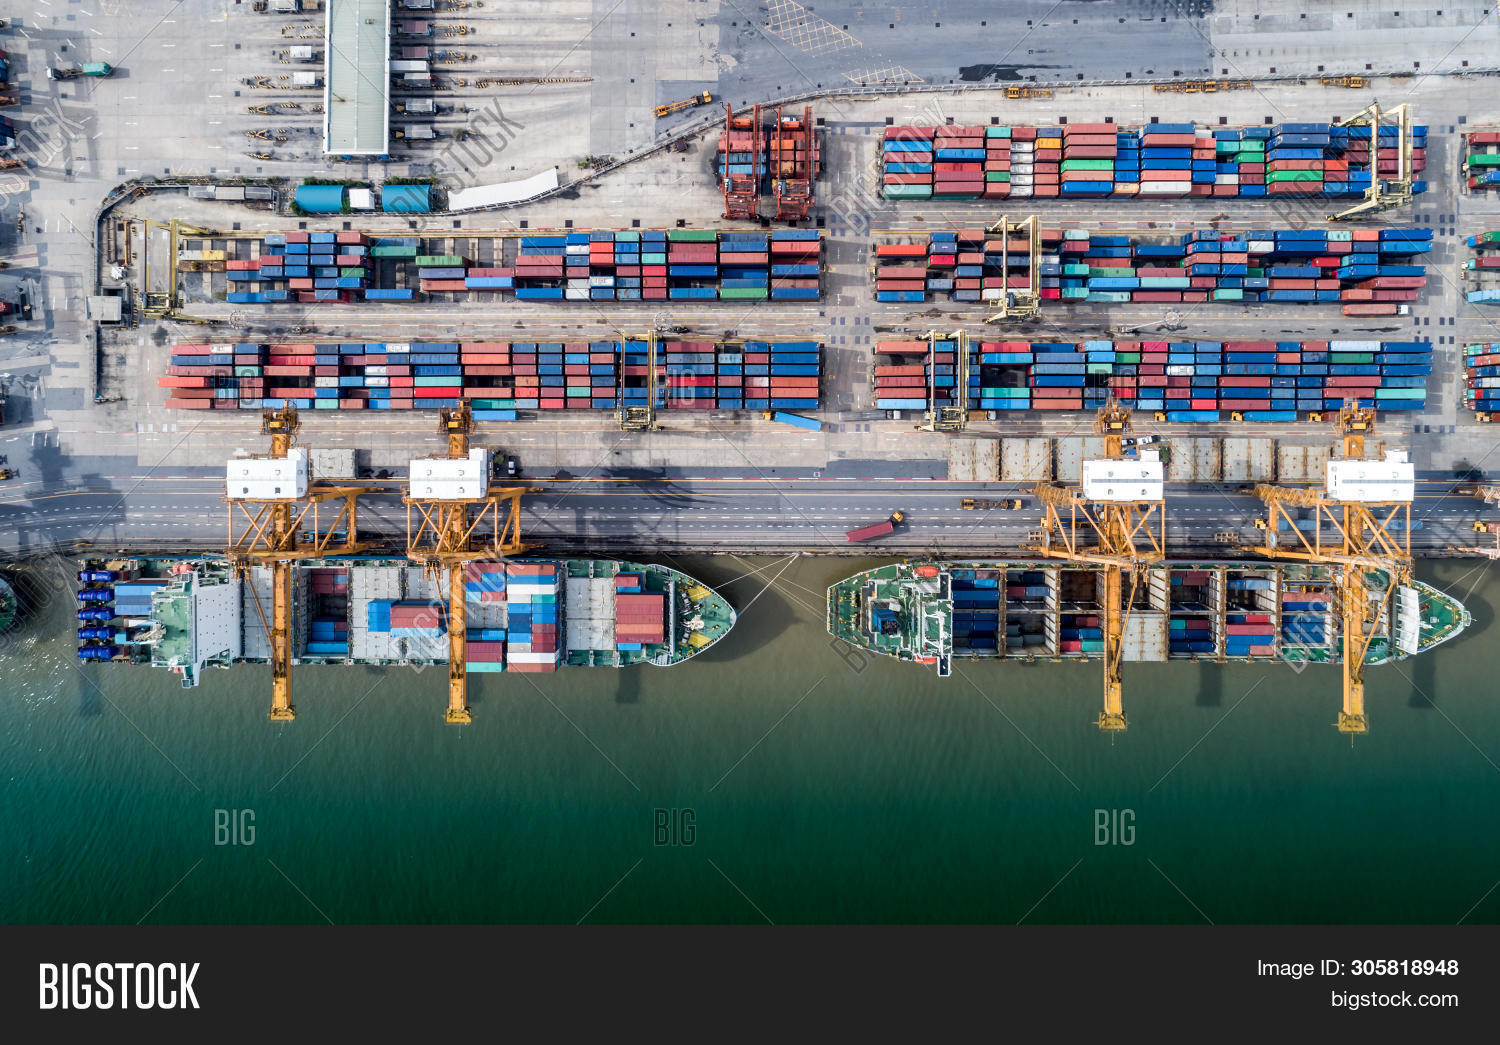 achievement,boat,box,business,cargo,chain,commerce,construction,container,courier,crane,delivery,distribution,dock,dockyard,economy,export,freight,global,harbor,harbour,import,industrial,industry,international,loading,logistic,manufacturing,maritime,nautical,plane,port,seaport,ship,shipping,shipyard,stacked,storage,structure,supply,technology,terminal,trade,traffic,transport,transportation,truck,unloading,warehouse,weight